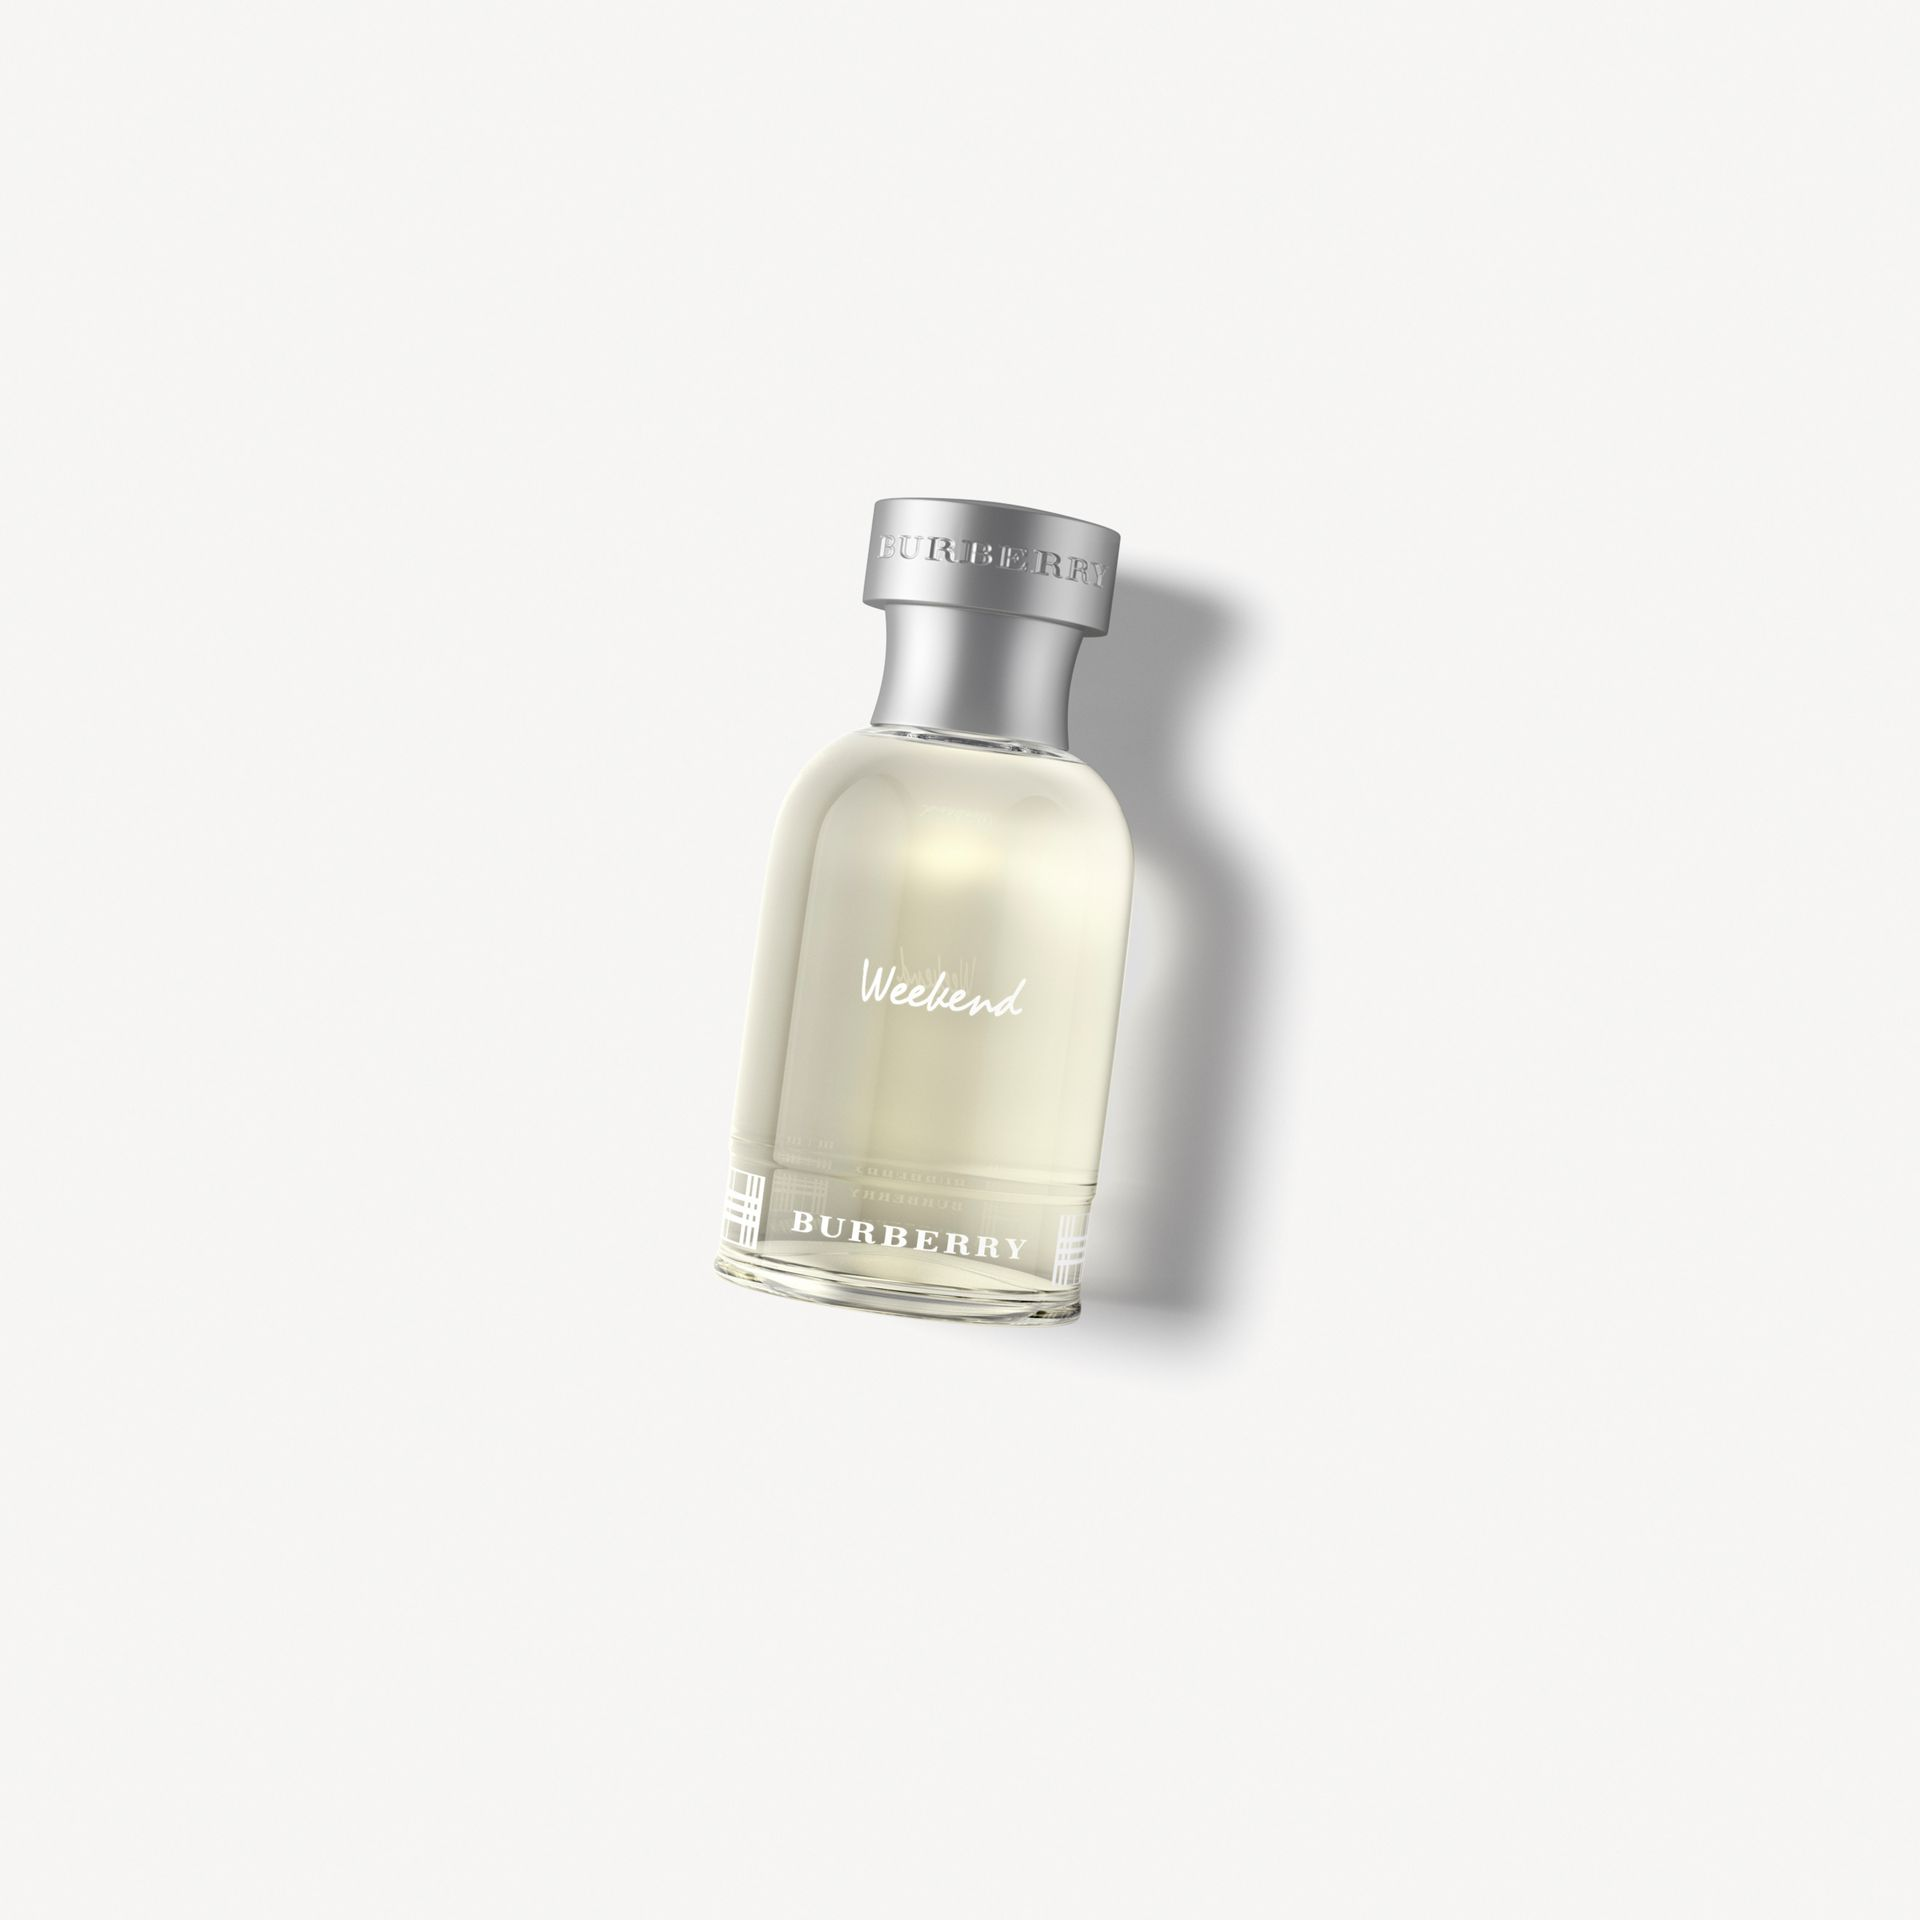 Burberry Weekend Eau de Toilette 50 ml - Galerie-Bild 1